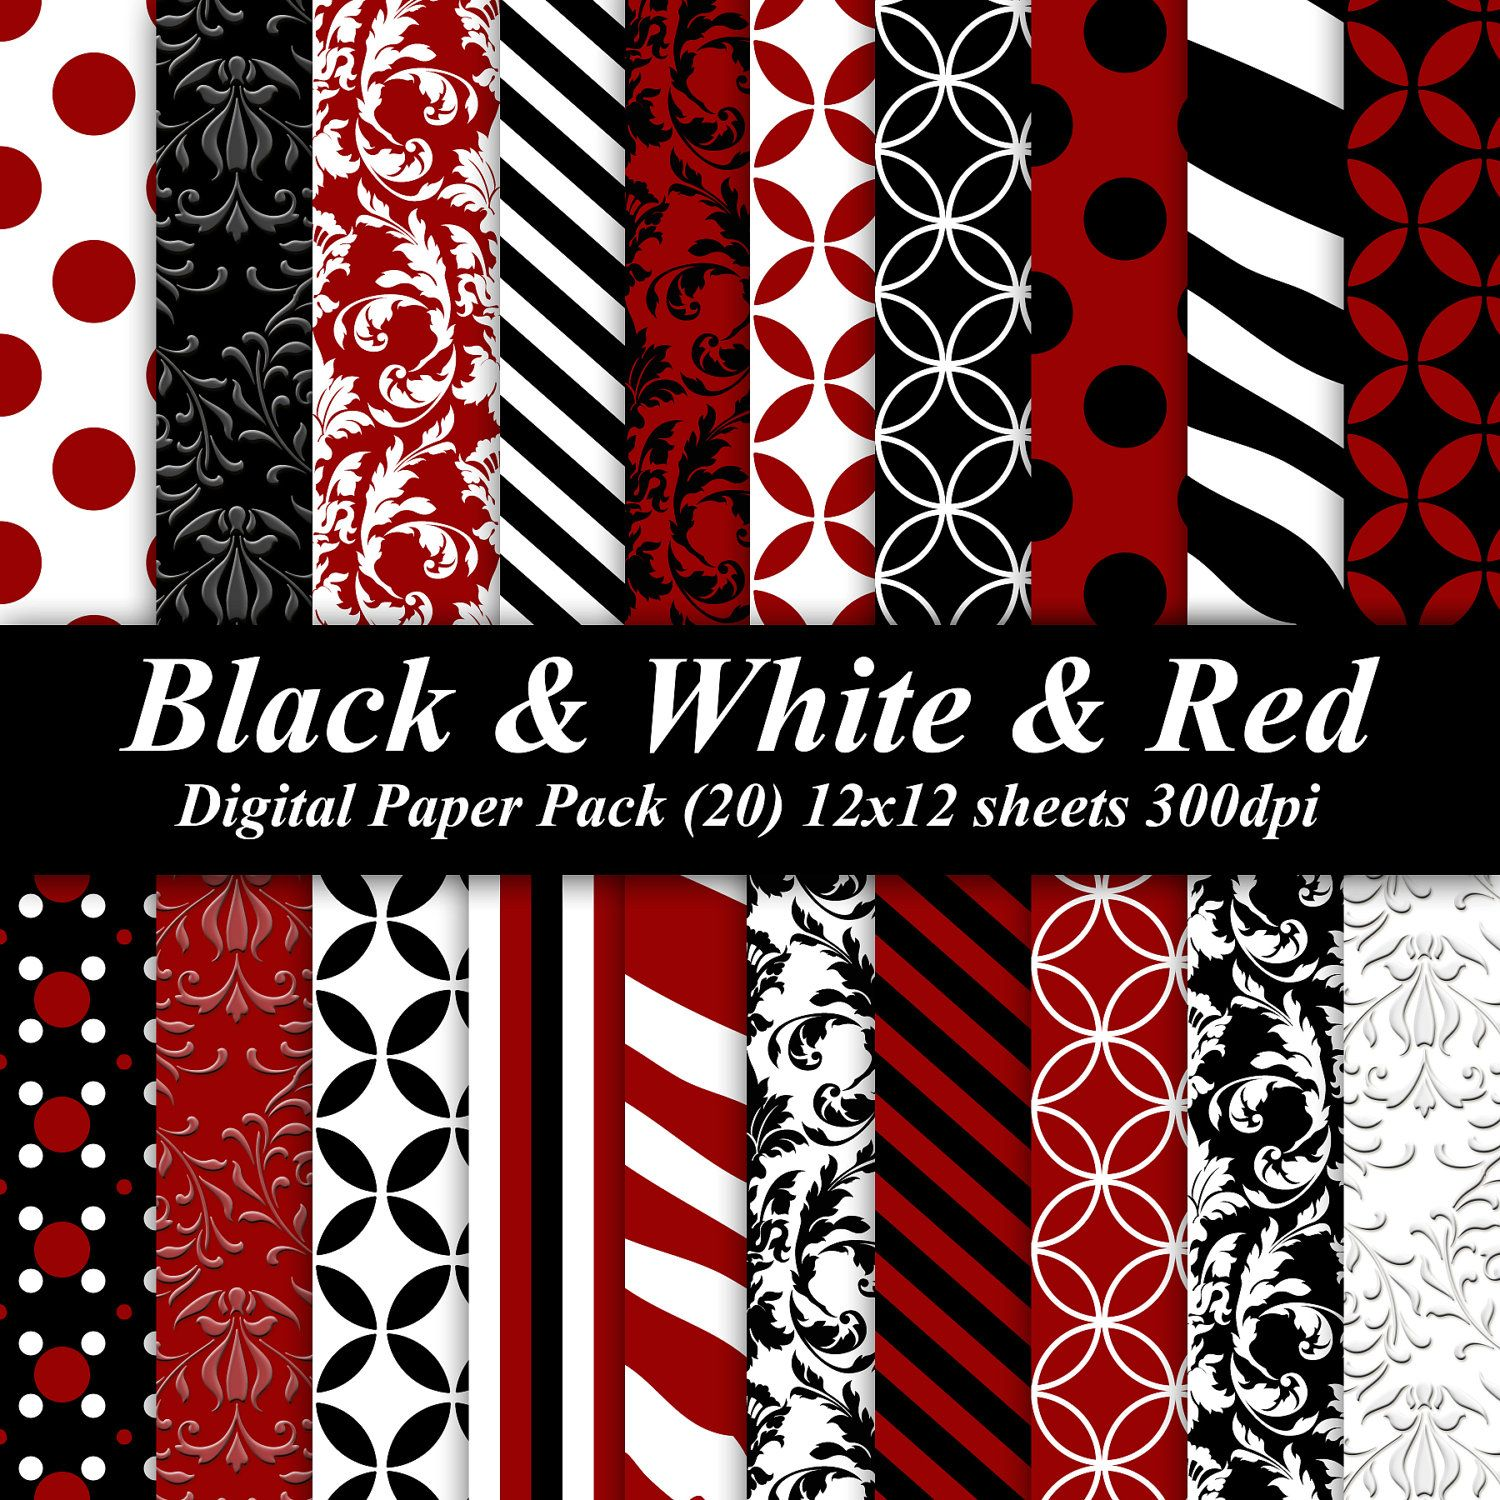 Scrapbook paper etsy - Black And White And Red Digital Paper Pack 20 300 Dpi 12x12 Red Black